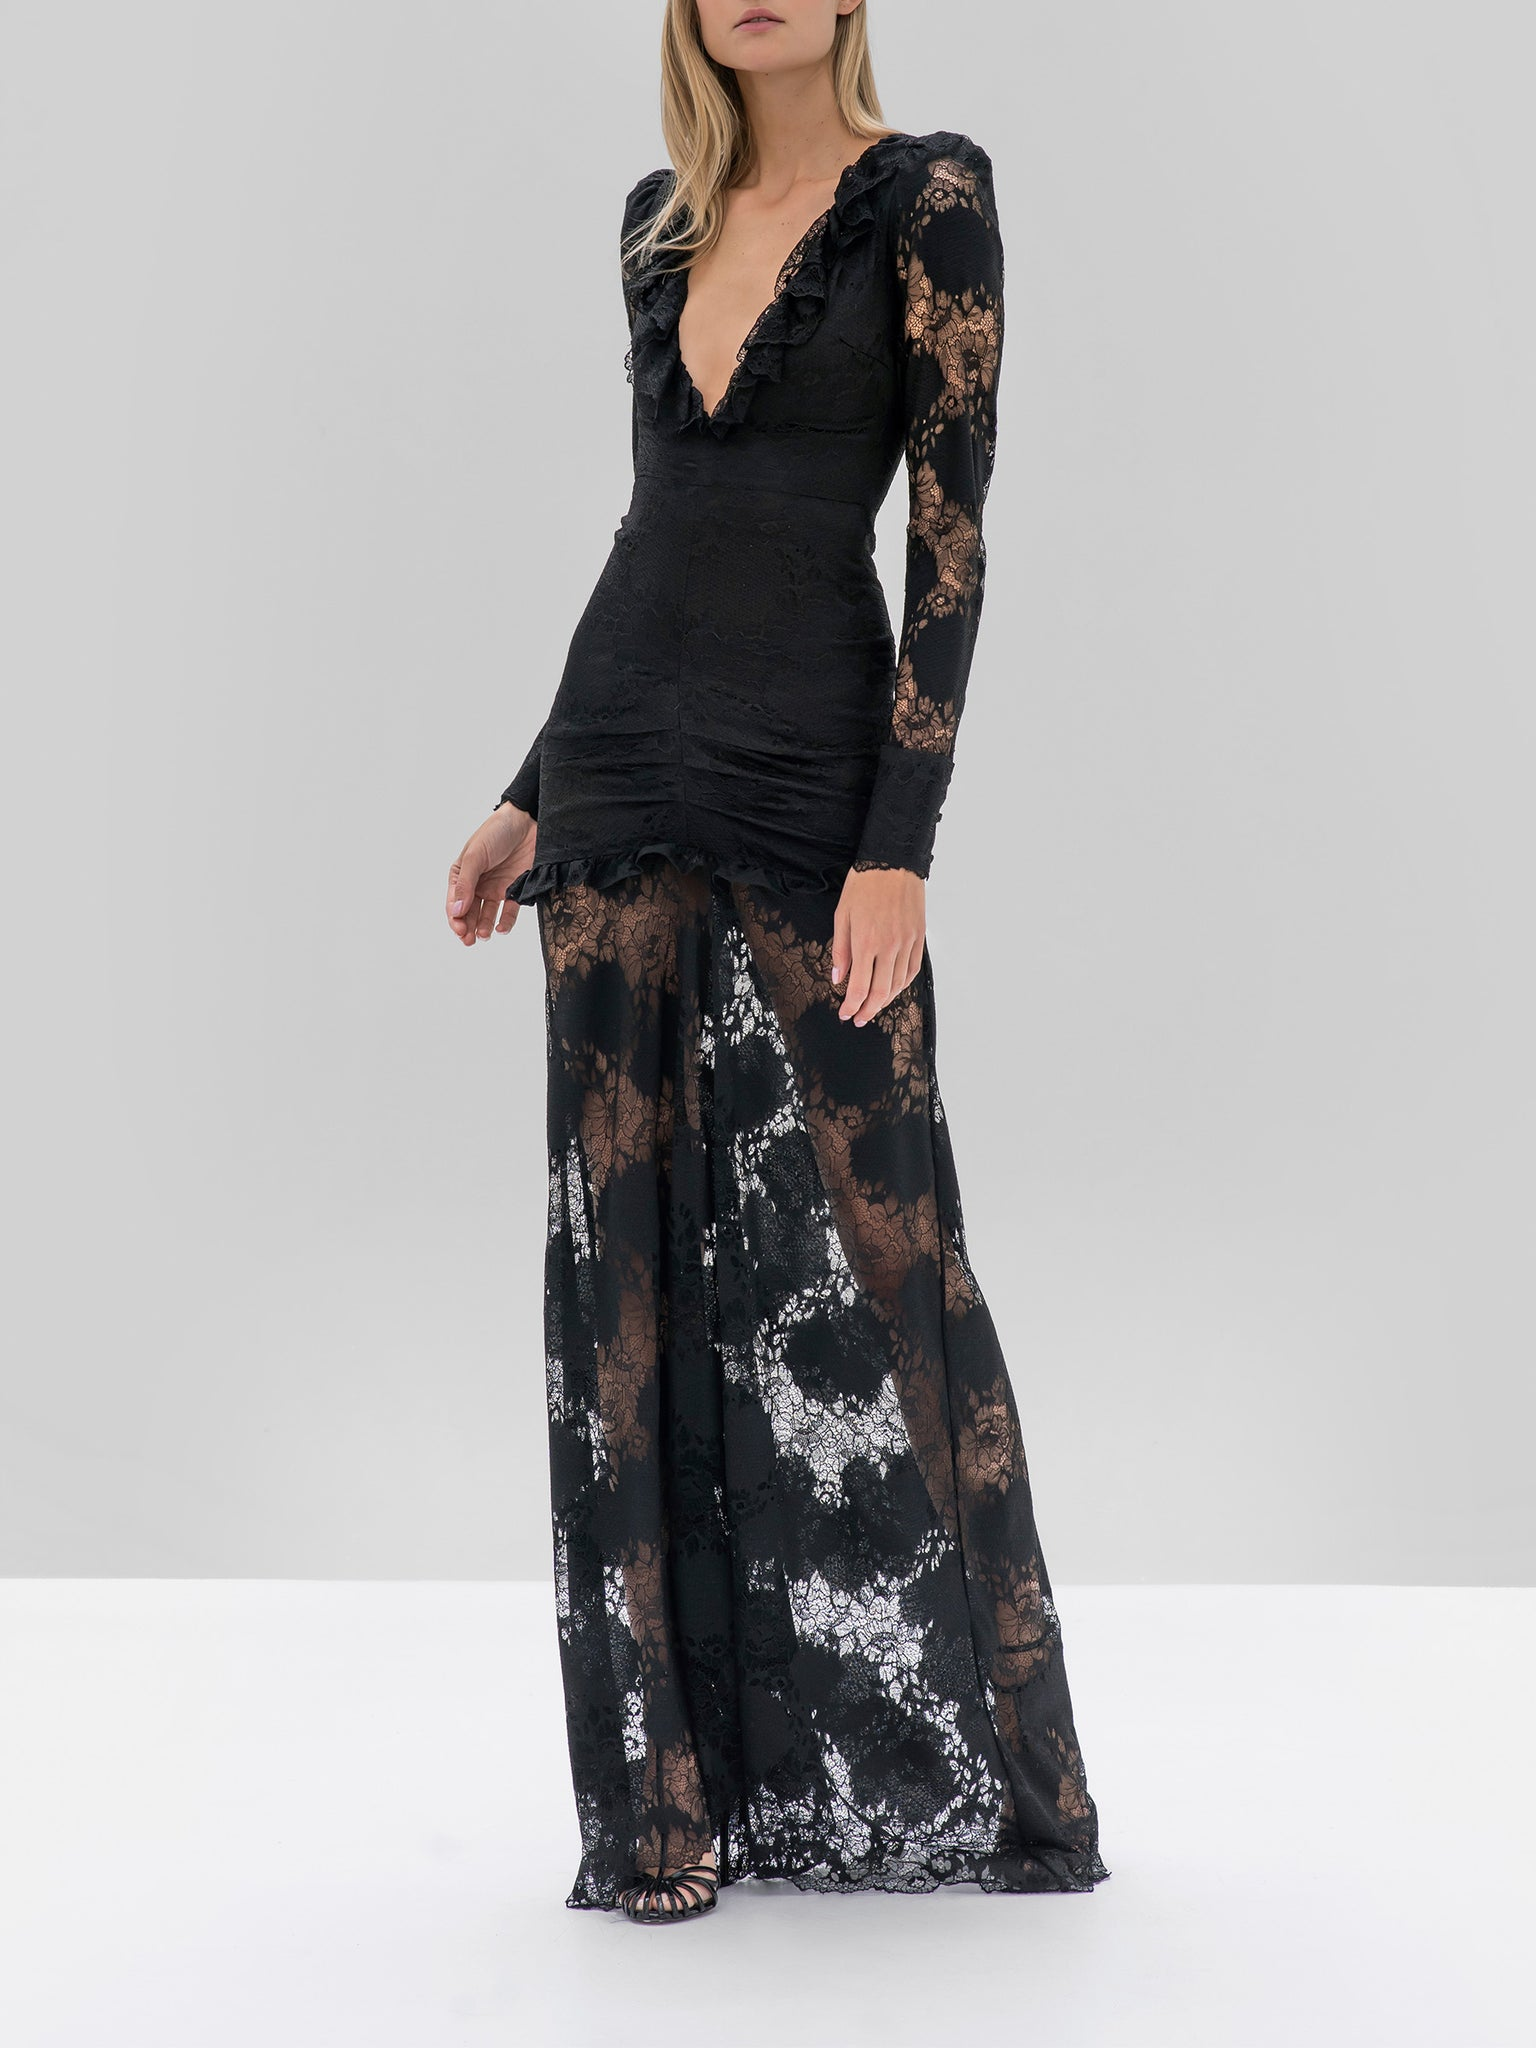 Alexis Lucasta Dress in Black from the Fall Winter 2019 Ready To Wear Collection